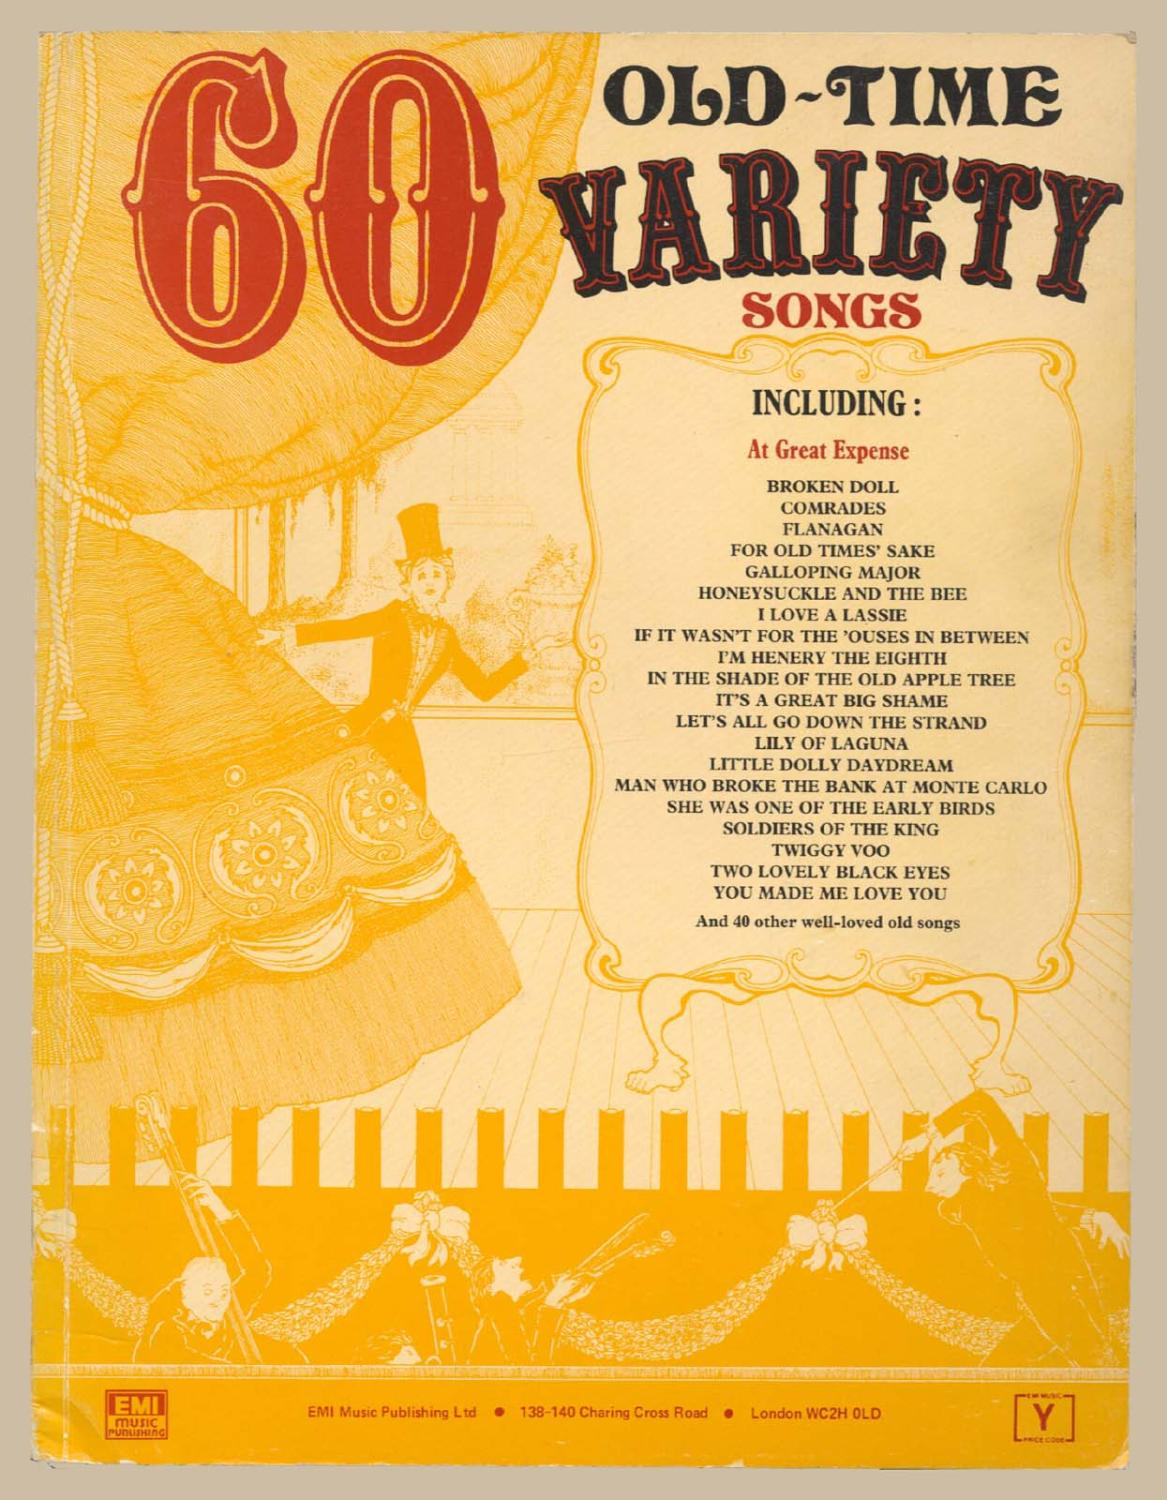 60 Old Time Variety Songs by EMI Music Publishing: EMI Music